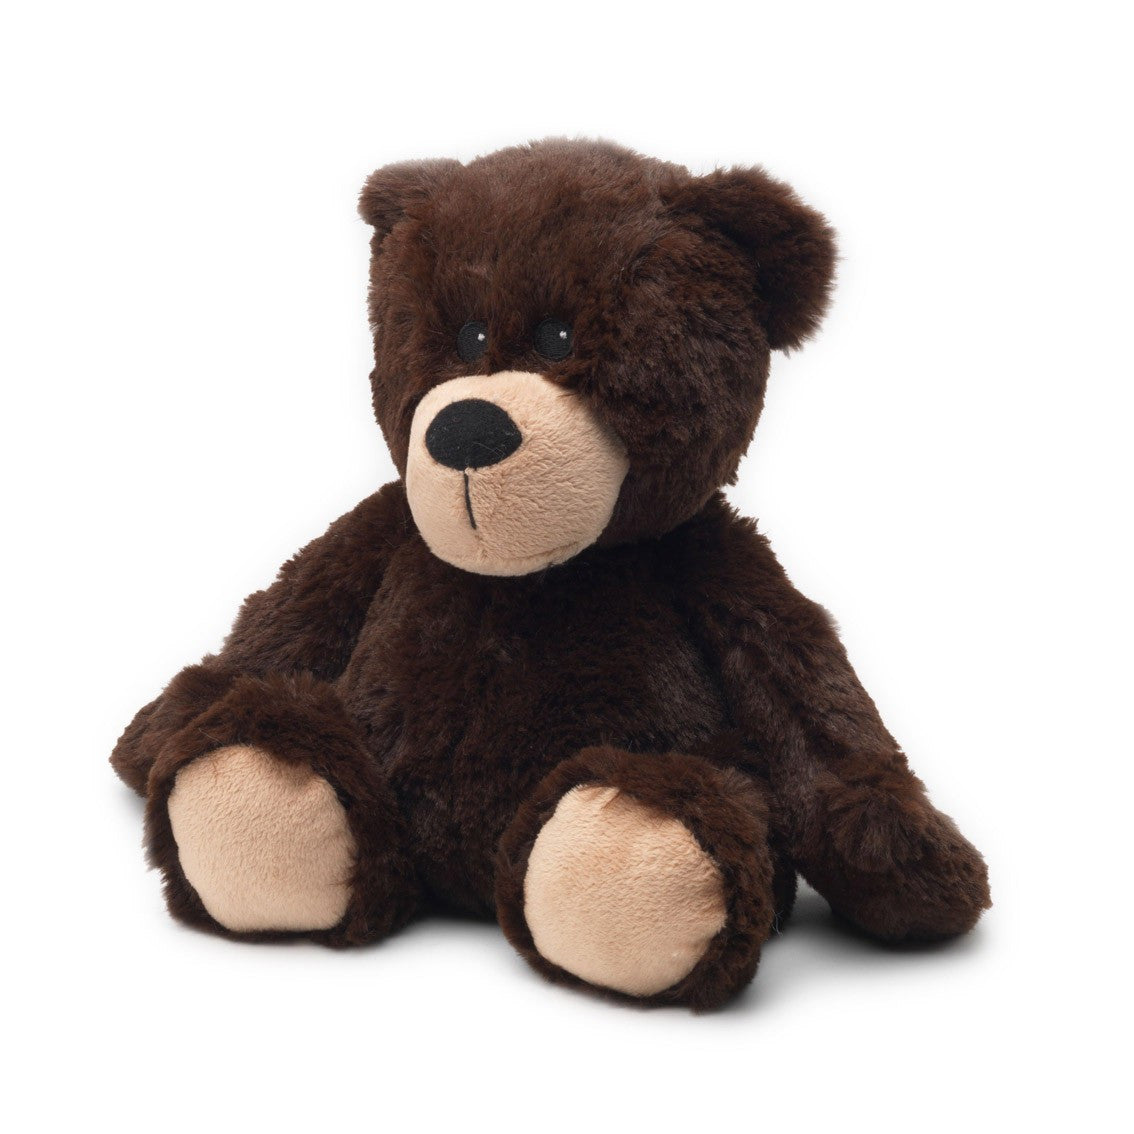 Warmies® Cozy Plush Brown Bear - Bendixen's Giftware